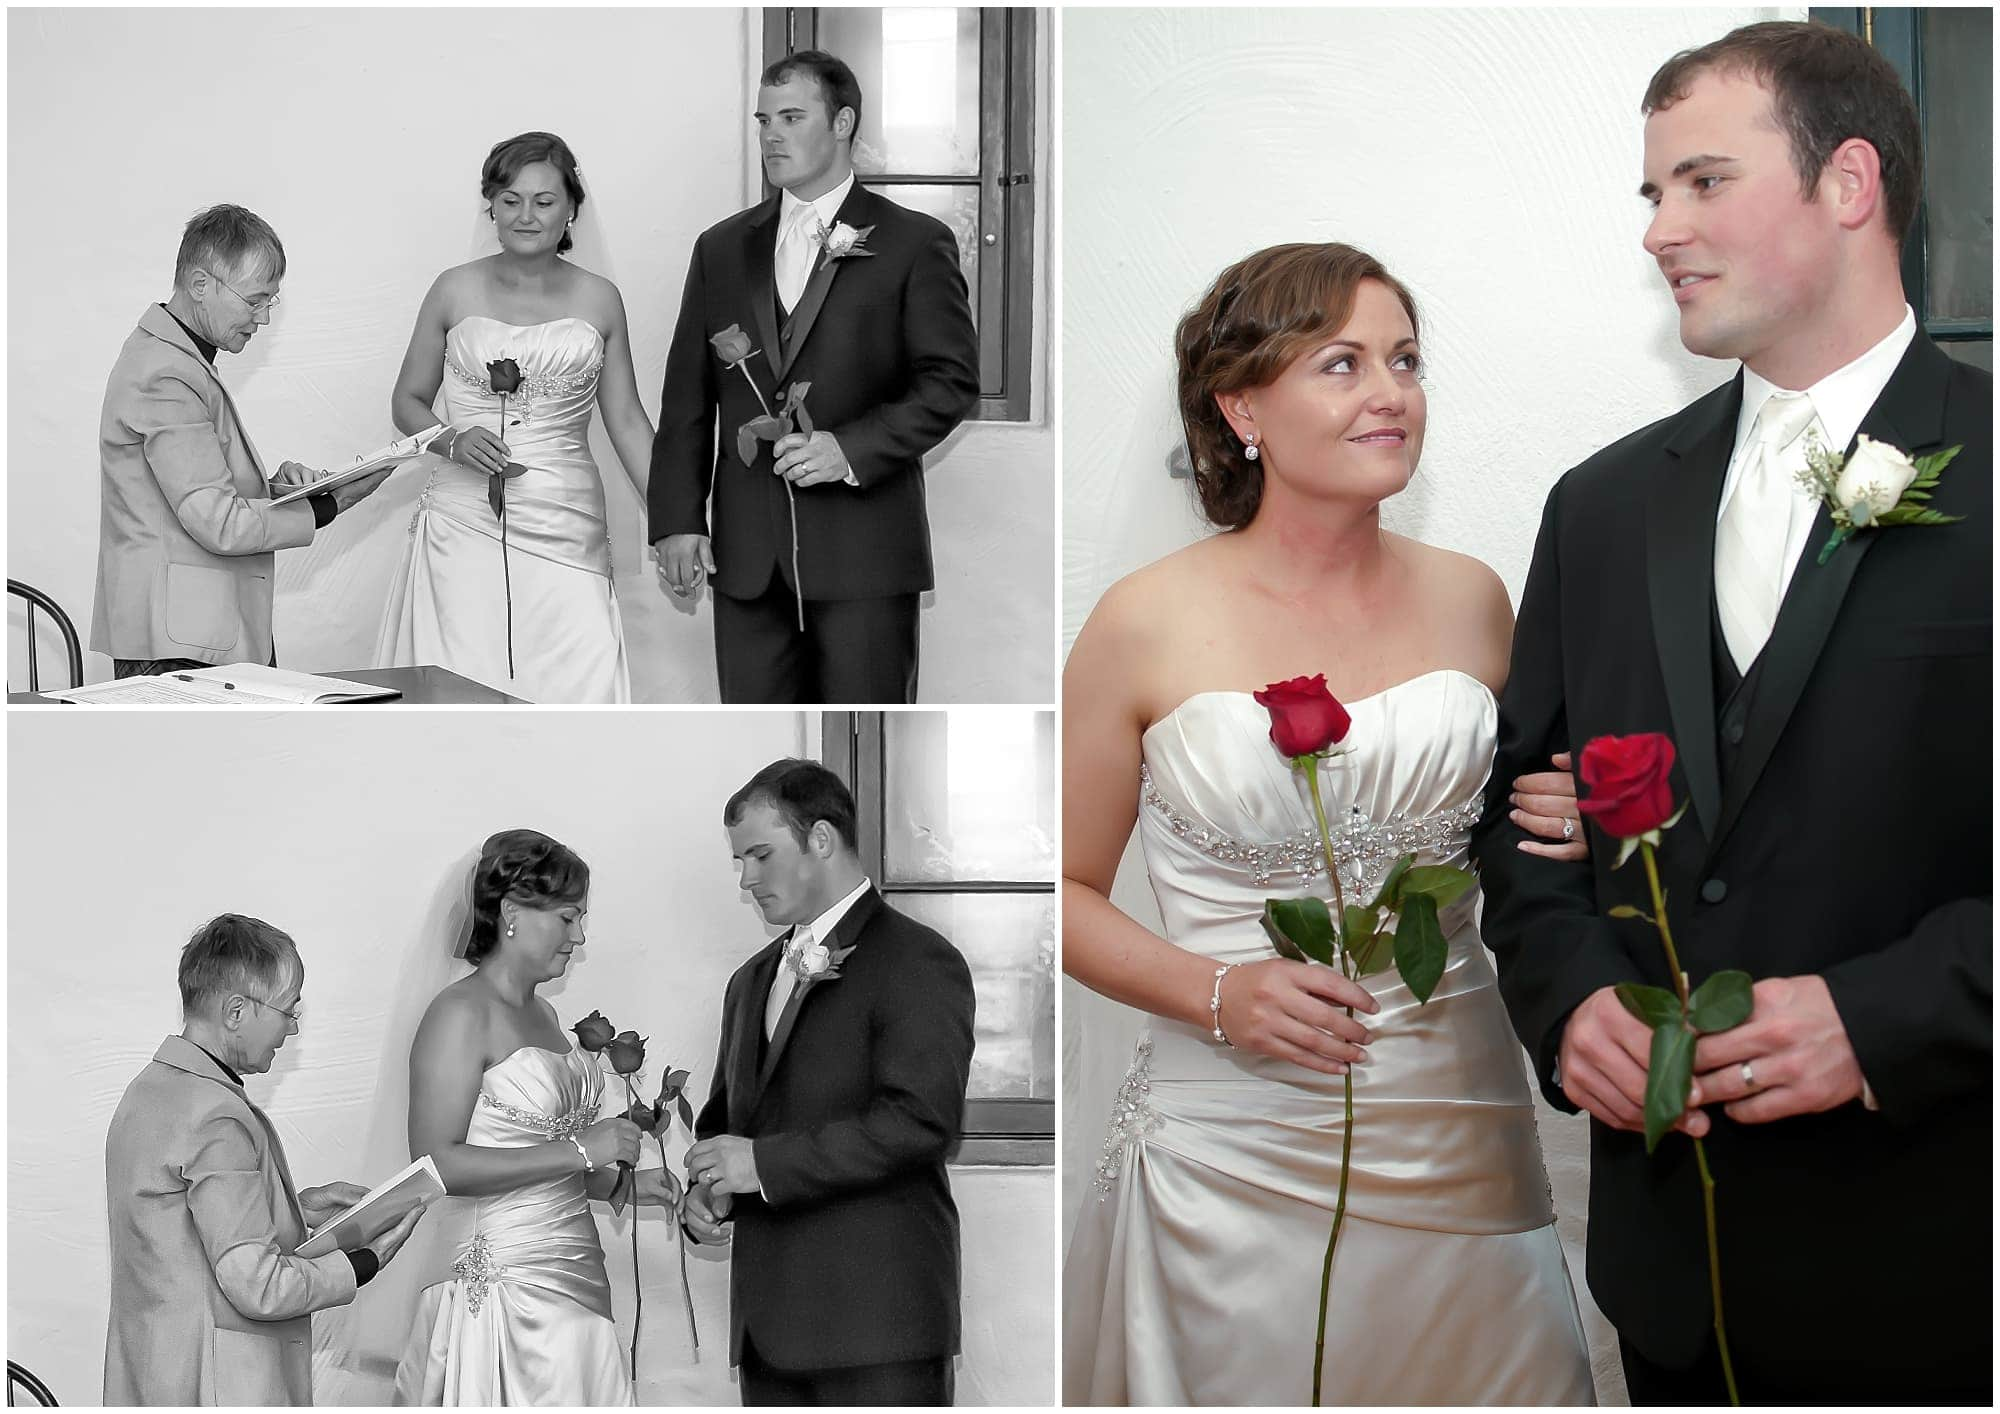 The bride and groom exchange roses during their wedding ceremony at the Citadel Hill in Halifax, NS.